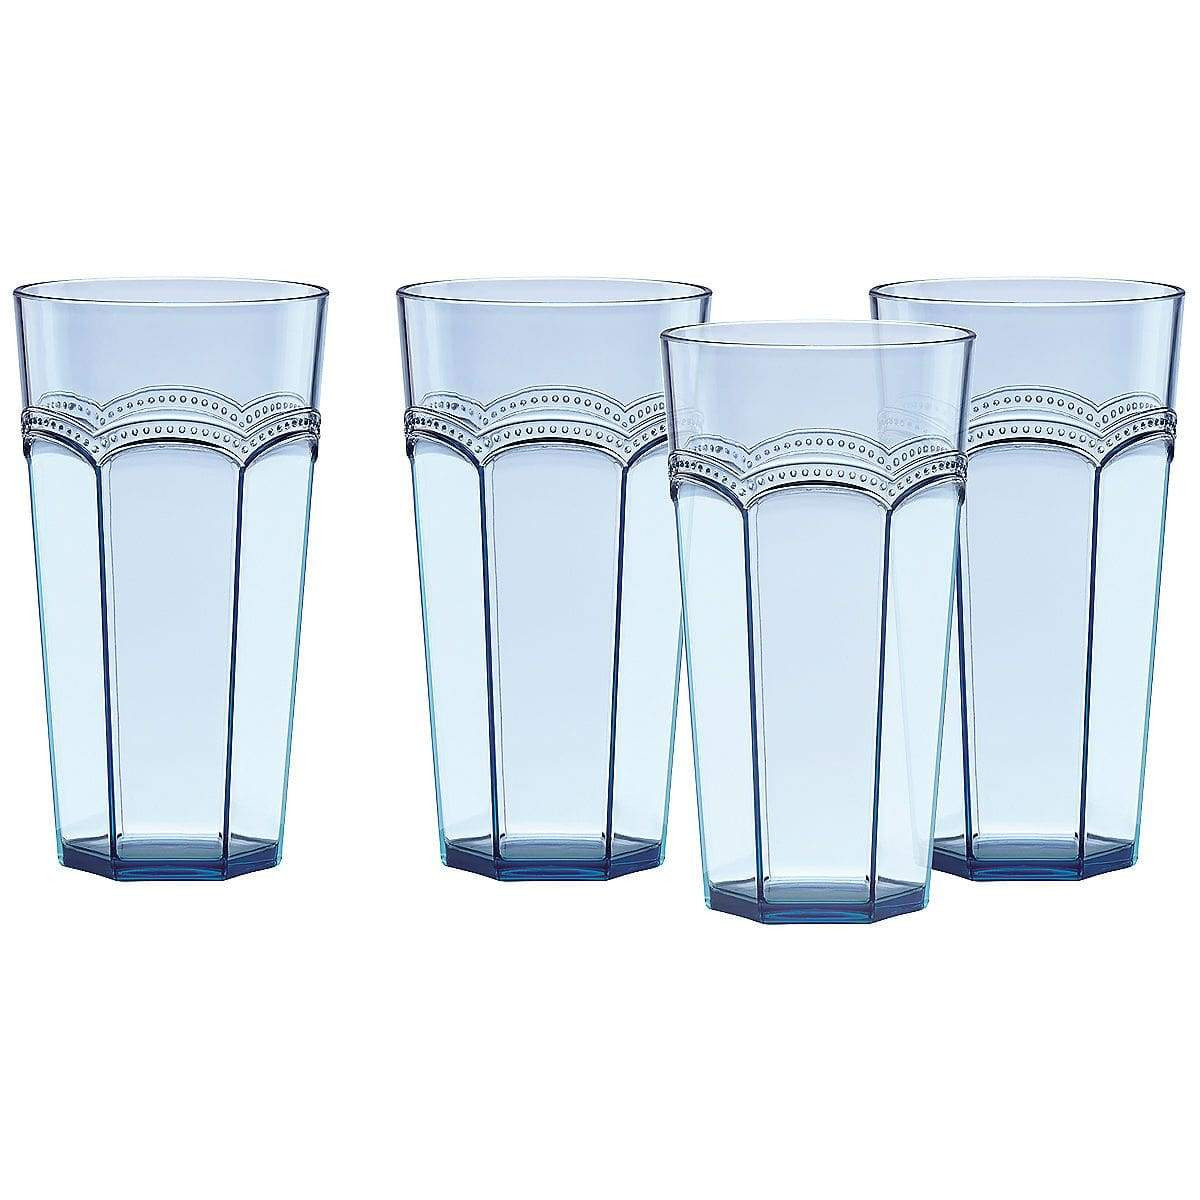 mikasa vases and bowls of lenox drinkware giftware gallery with regard to lenox french perle melamine aqua highball glasses set of 4 drinkware misc giftware gallery 688